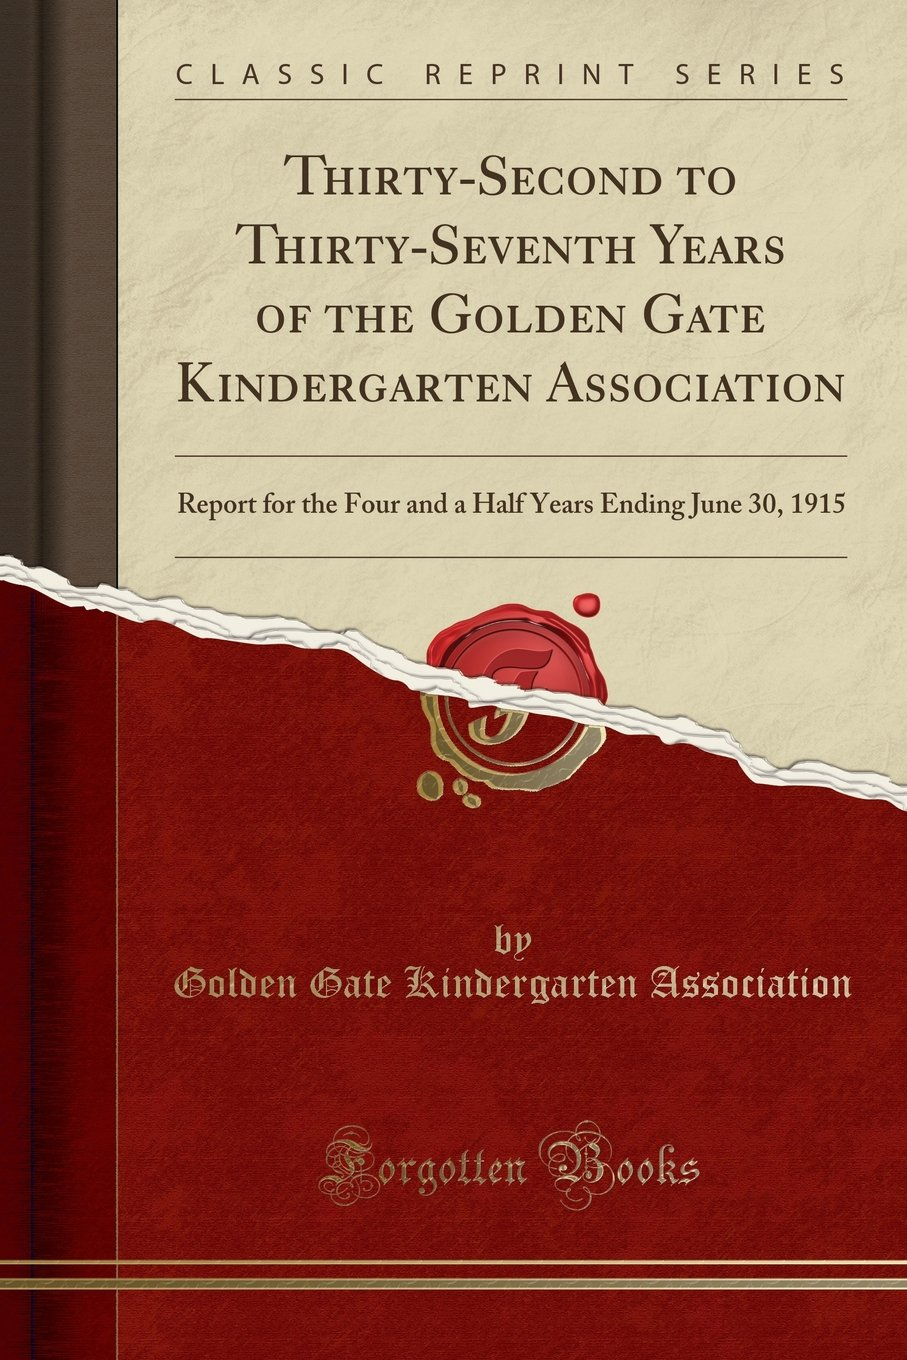 Thirty-Second to Thirty-Seventh Years of the Golden Gate Kindergarten Association: Report for the Four and a Half Years Ending June 30, 1915 (Classic Reprint) PDF